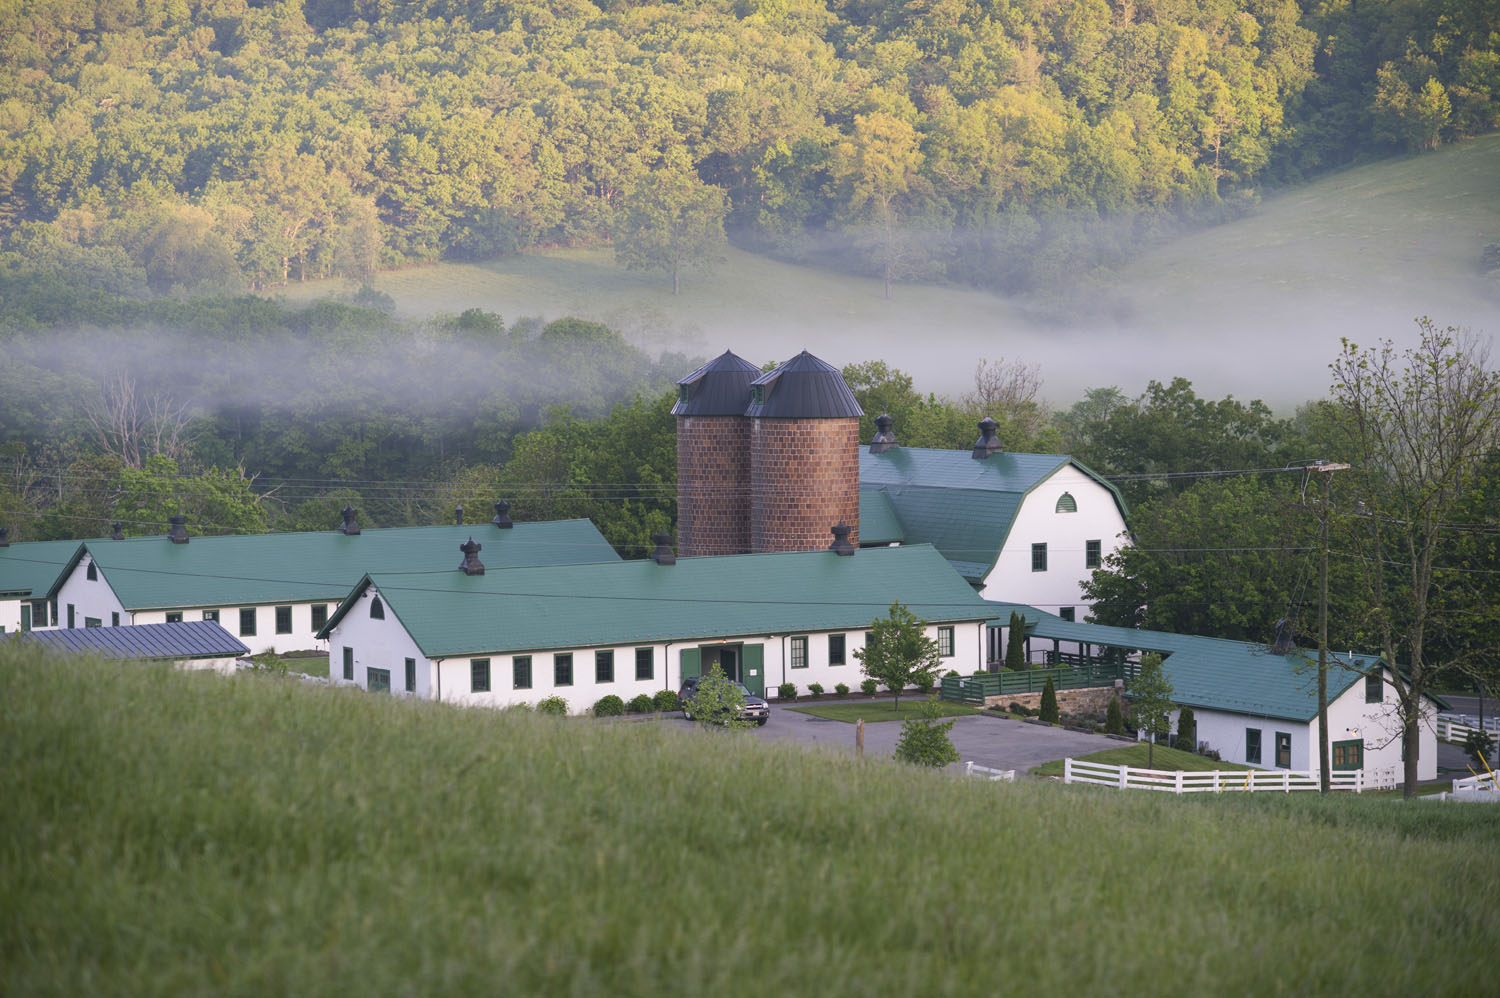 Old Dairy Community Center